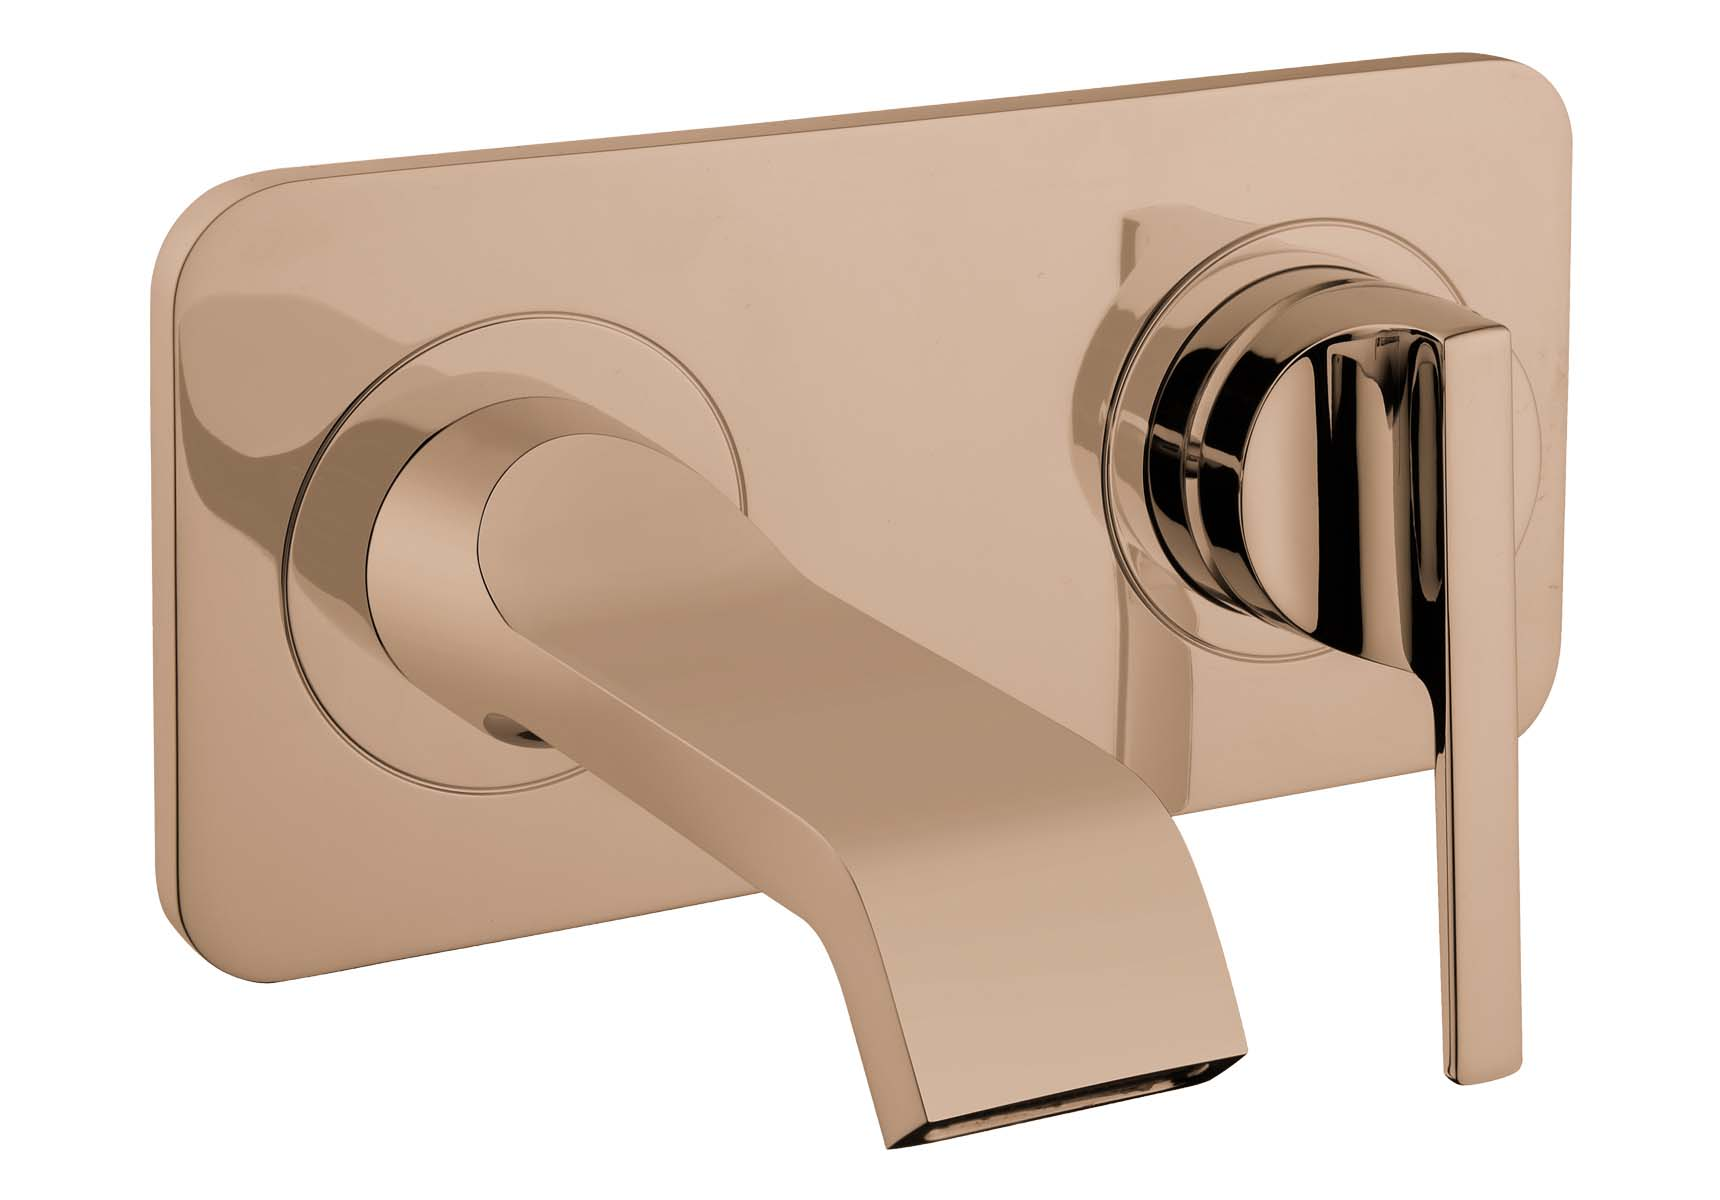 Suit Built-In Basin Mixer, Exposed Part, Copper